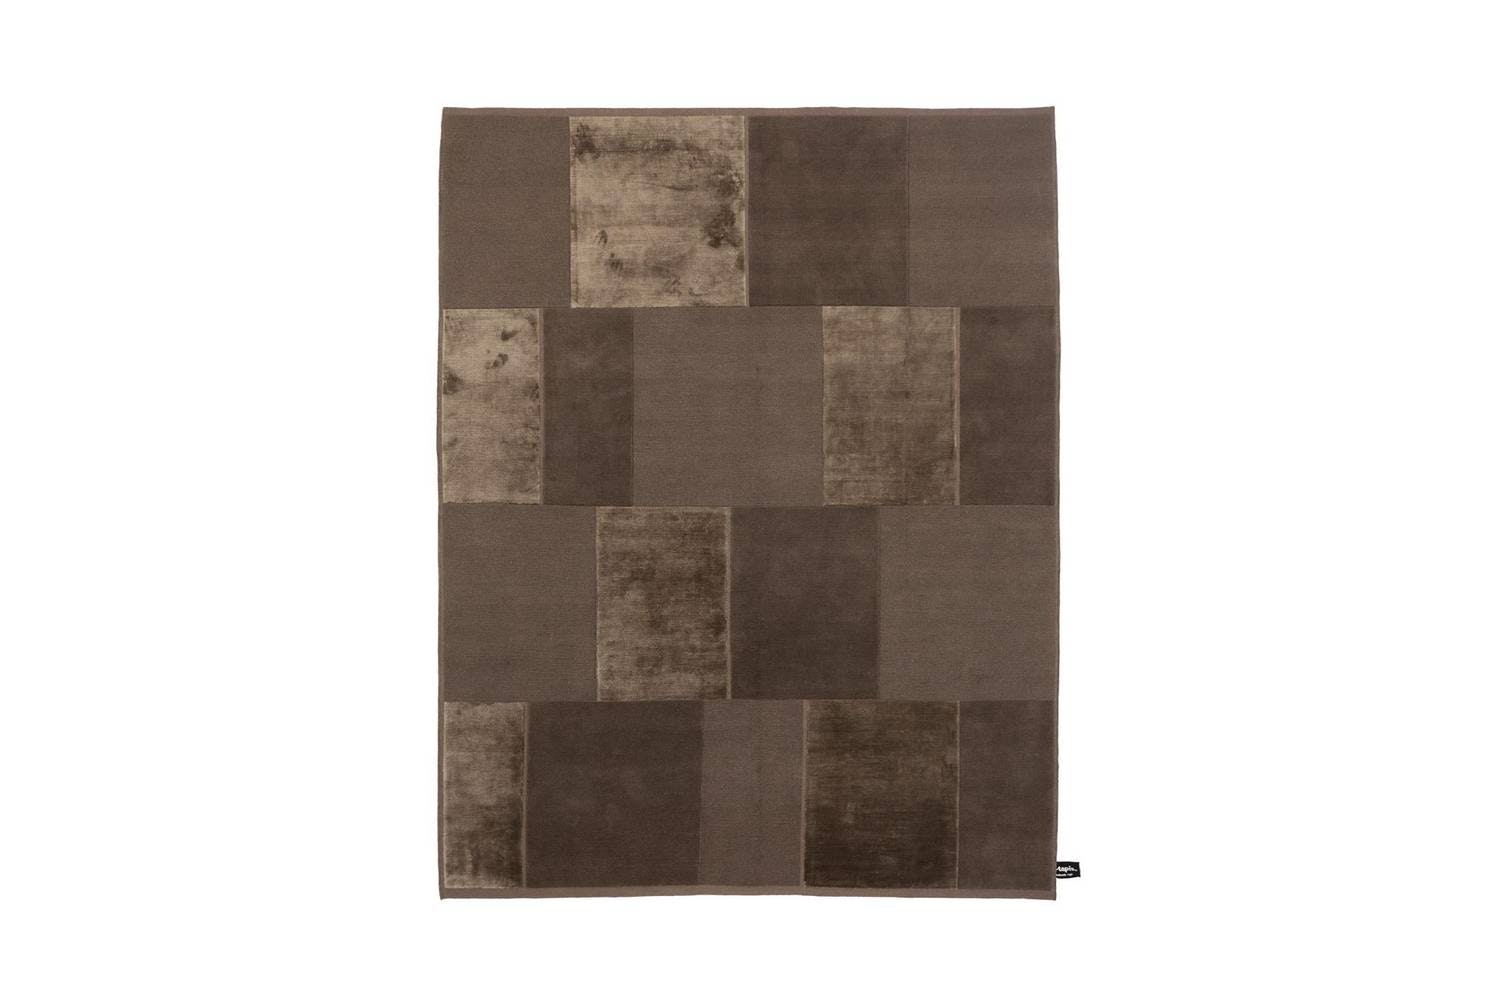 Casellario Monocromo Rug by Architectural Collection for CC-Tapis